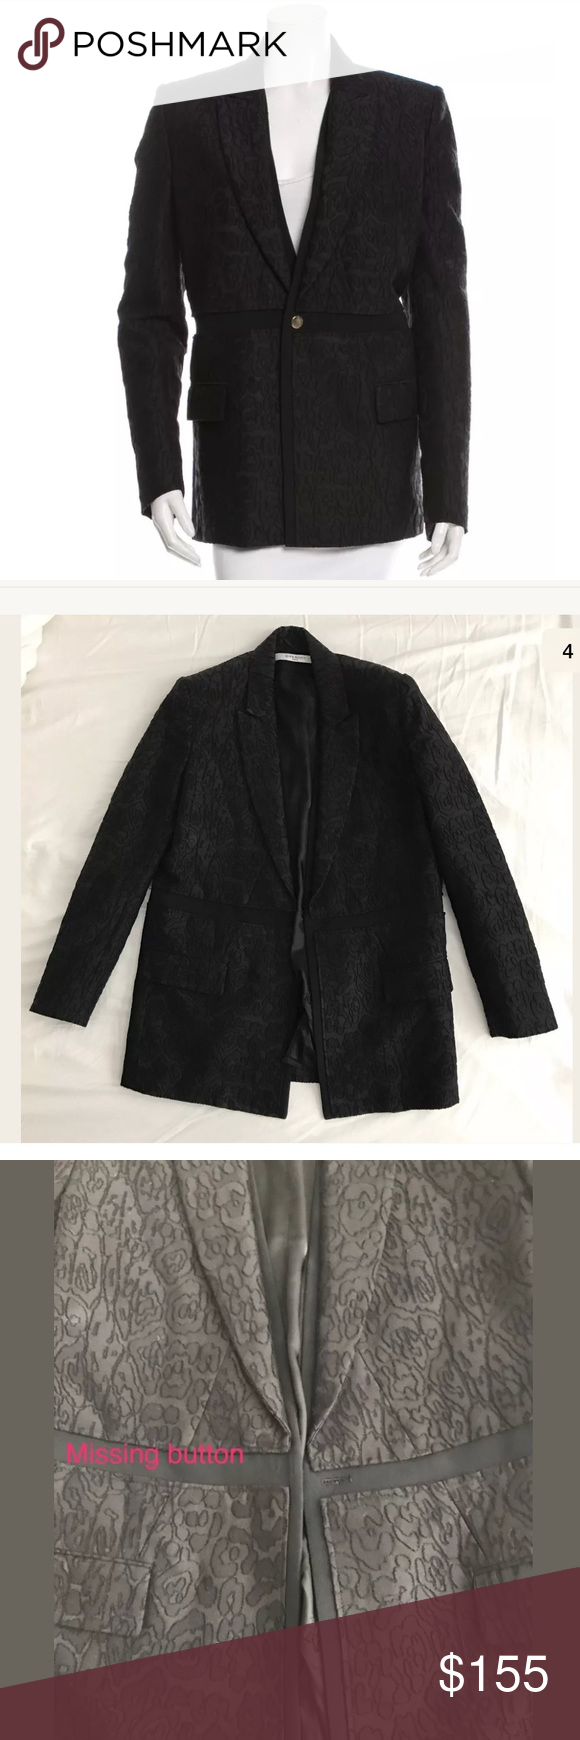 """$2K Givenchy Black Leopard Blazer Jacket 38 This blazer is missing the front closure button and sleeve buttons show signs of wear.  (easy fix to get a button at the fabric store for a couple bucks) Some very slight fading on shoulders  Jacket retails for over $2,000 - get it here for an awesome price!!  Approximate measurements lying flat:  Shoulder to Shoulder: 15"""" Armpit to Armpit: 18"""" Sleeve Length (top shoulder to wrist hem): 23"""" Length (top shoulder to bottom hem): 27.5""""  I wear a US…"""